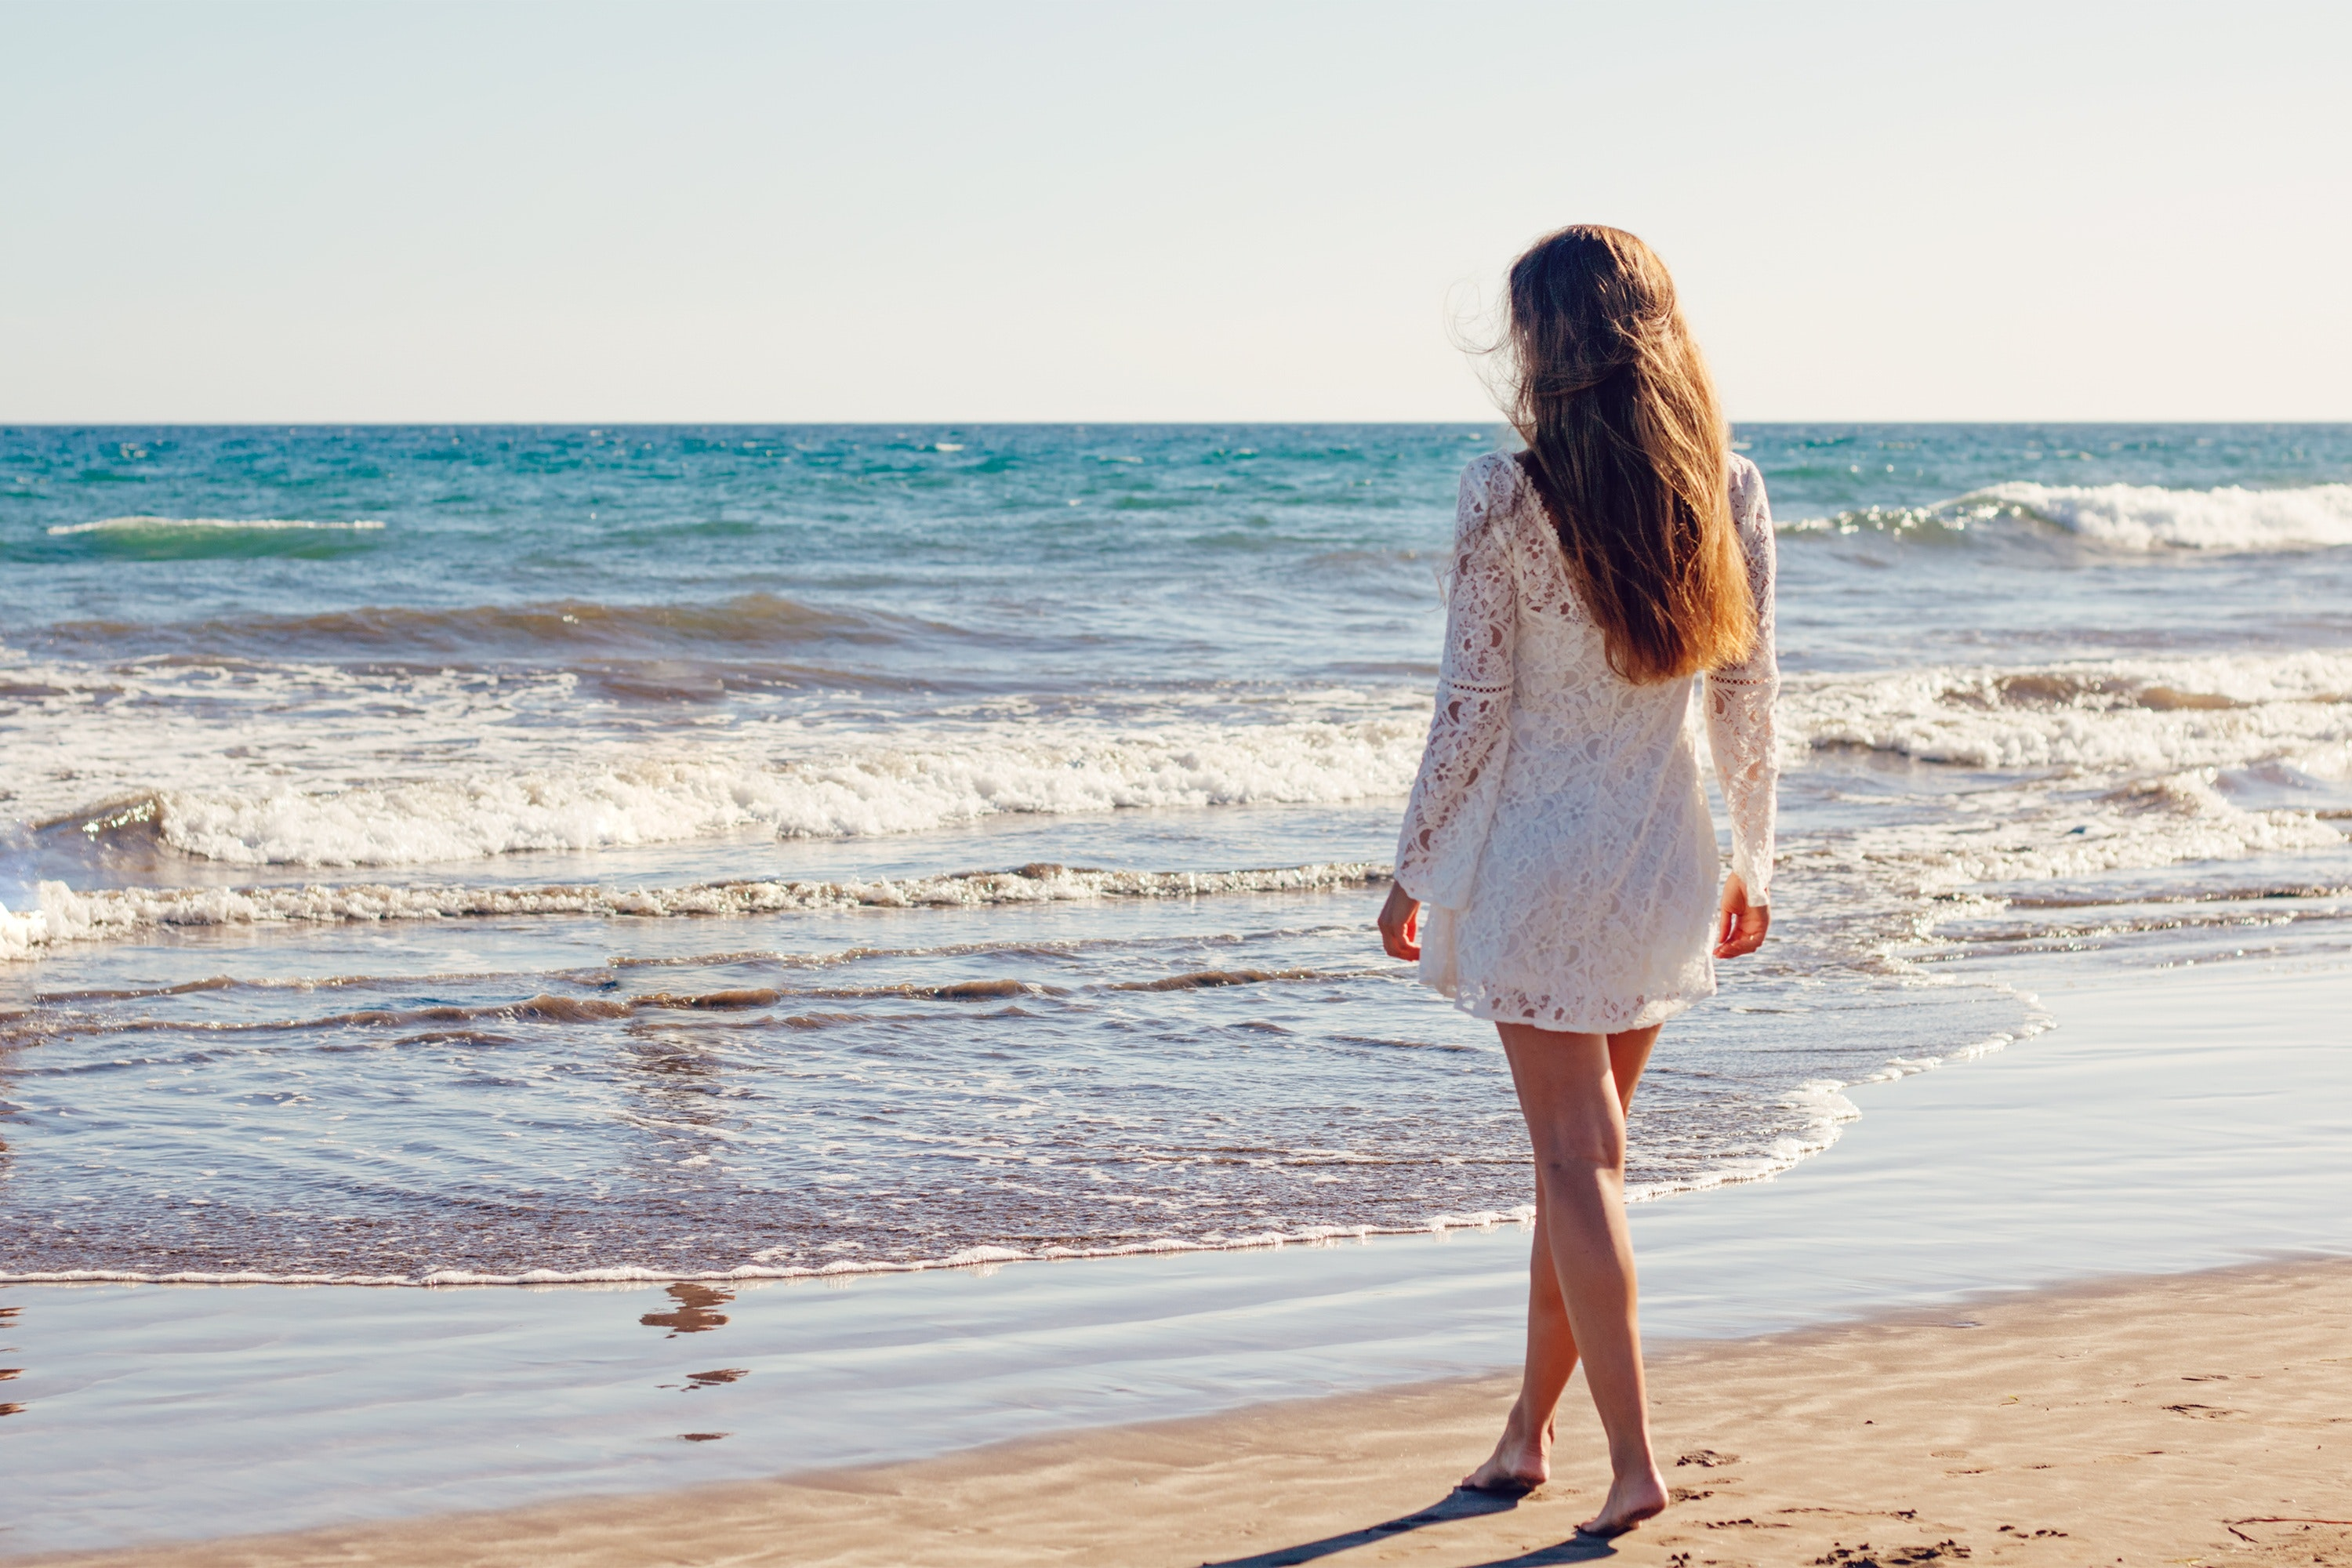 Woman in White Lace Long Sleeves Dress on Seashore, Beach, Relaxation, White dress, Waves, HQ Photo